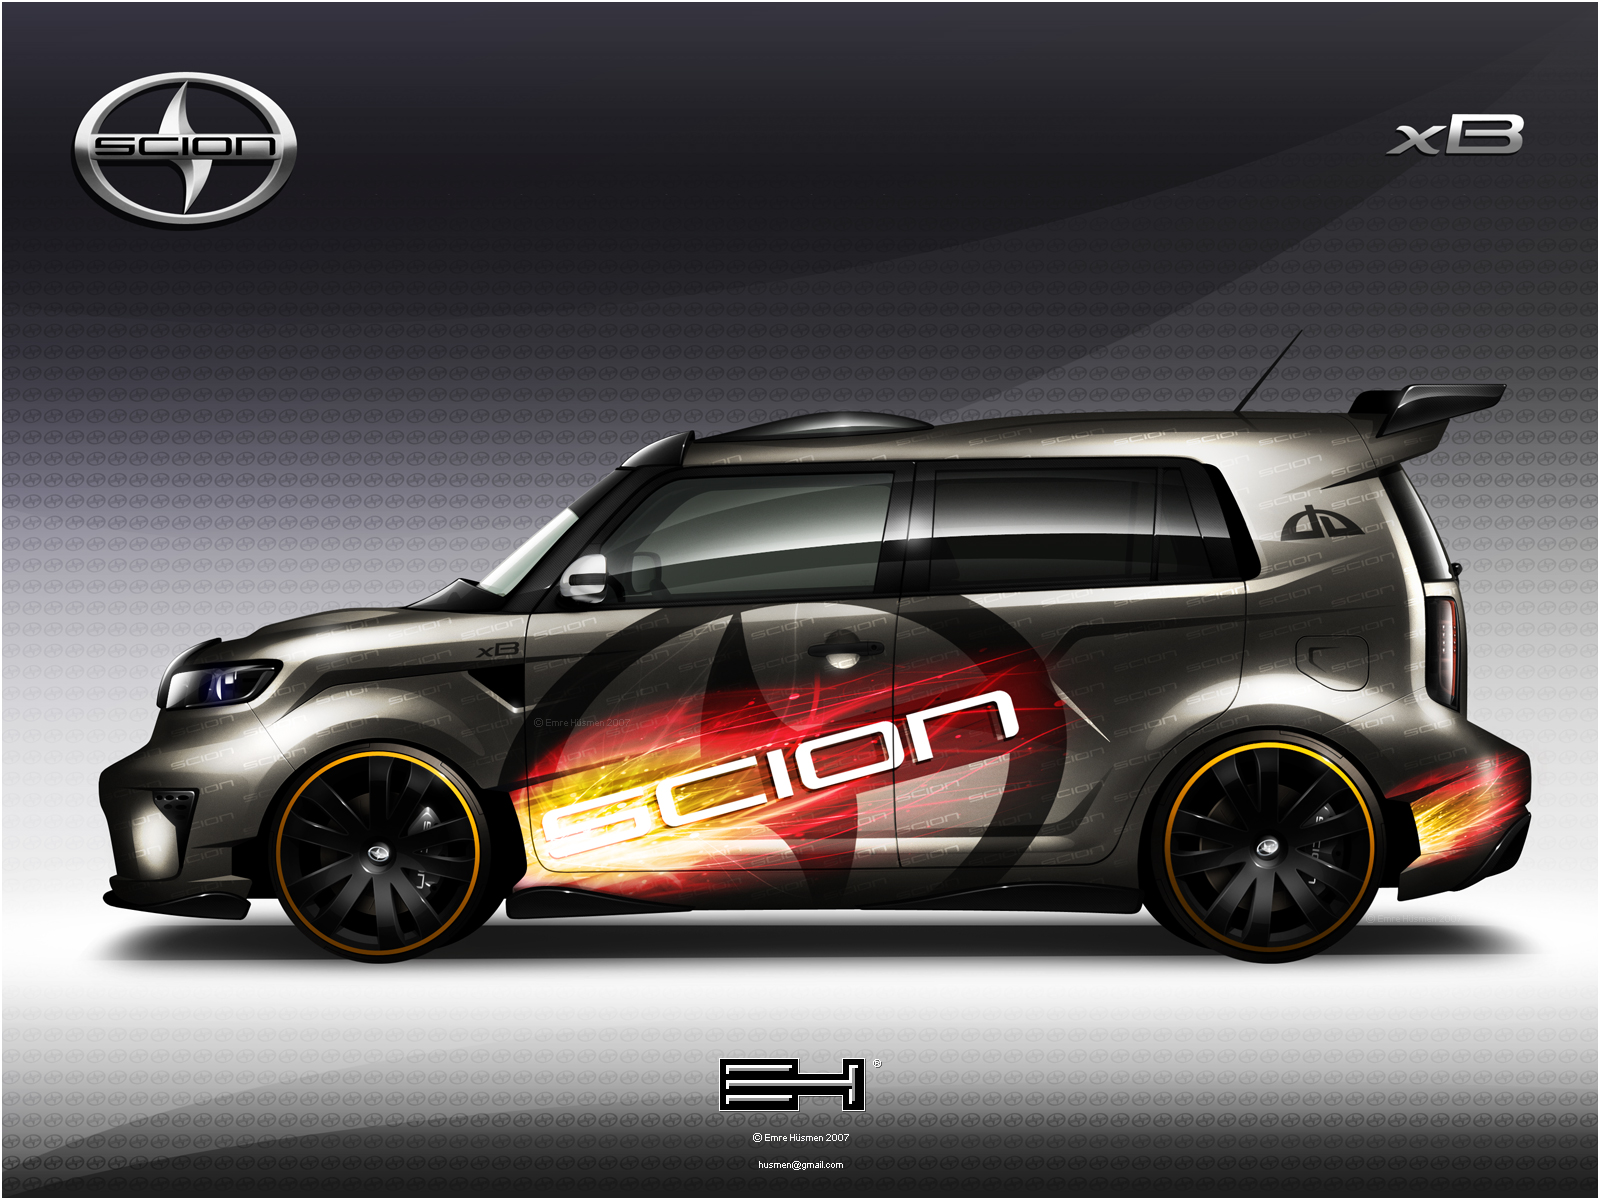 2008 scion xb skin by emrehusmen on deviantart. Black Bedroom Furniture Sets. Home Design Ideas